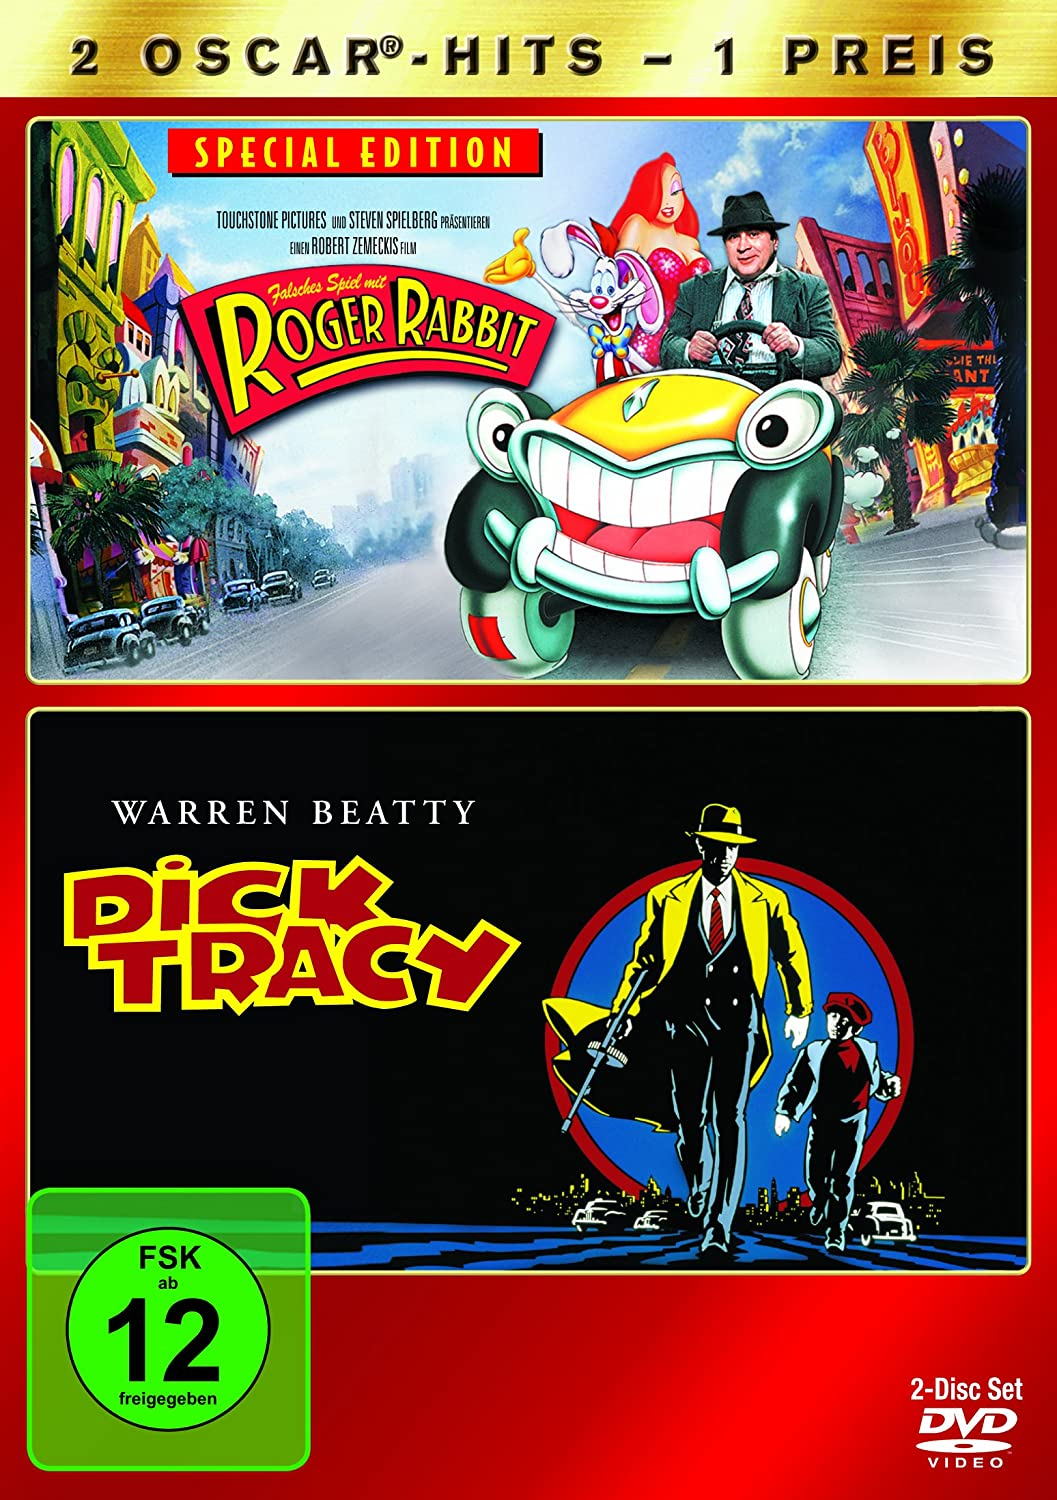 Falsches Spiel mit Roger Rabbit / Dick Tracy [2 DVDs]: Amazon.de ...